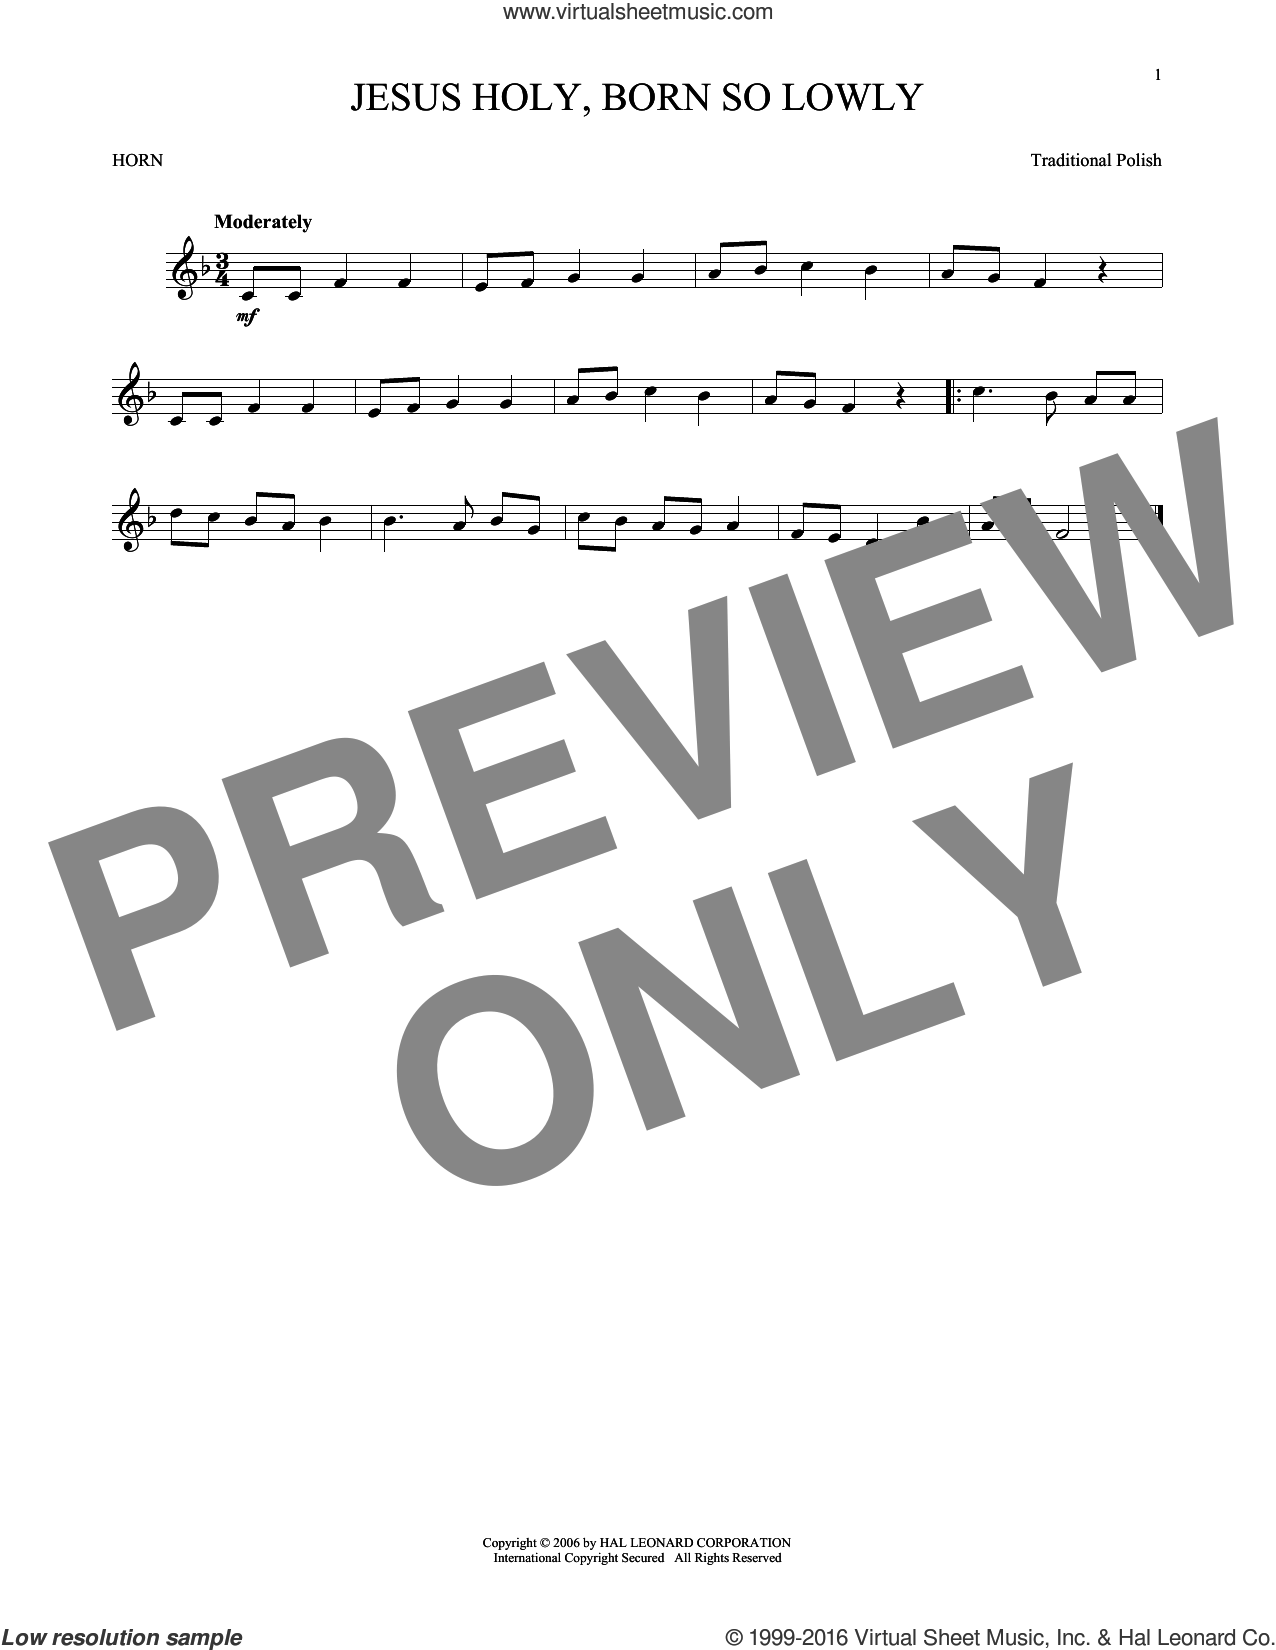 Jesus Holy, Born So Lowly sheet music for horn solo. Score Image Preview.